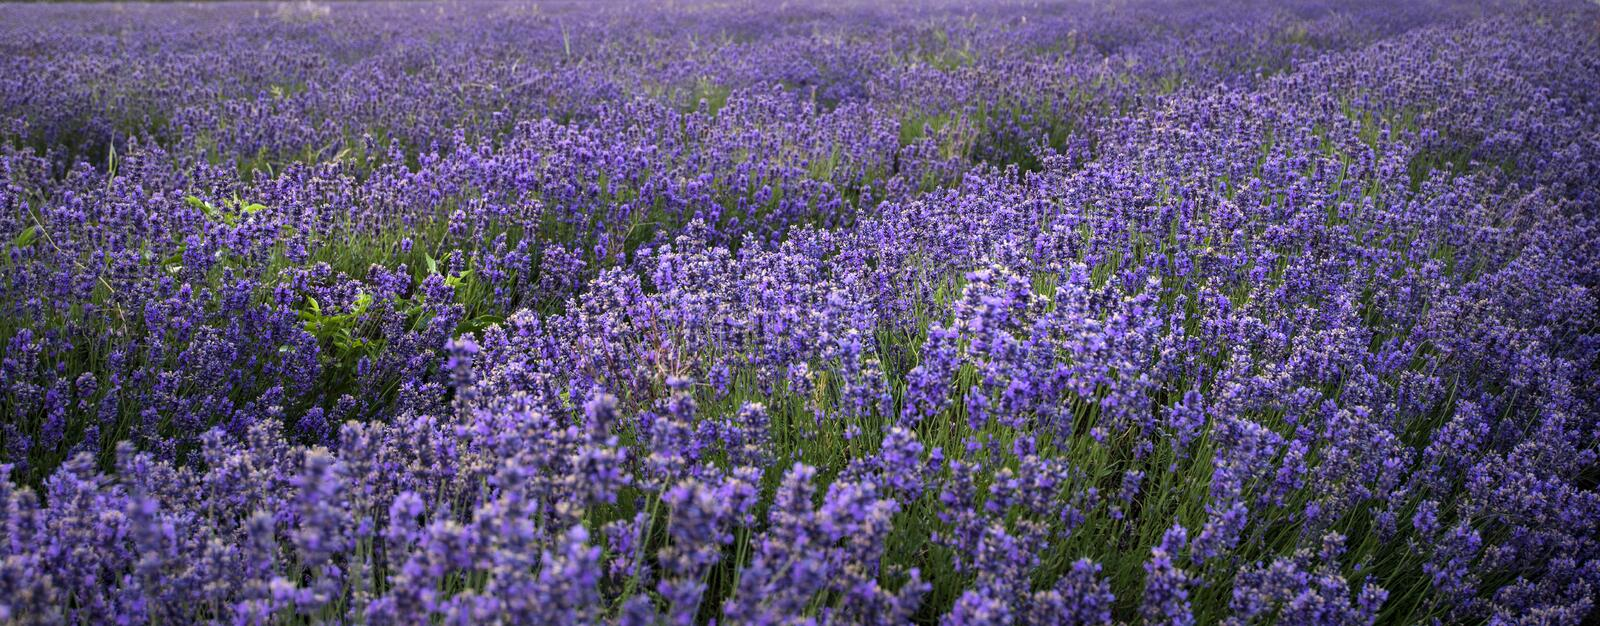 Stunning landscape of lavender field withselective focus for emphasis on plants royalty free stock photo